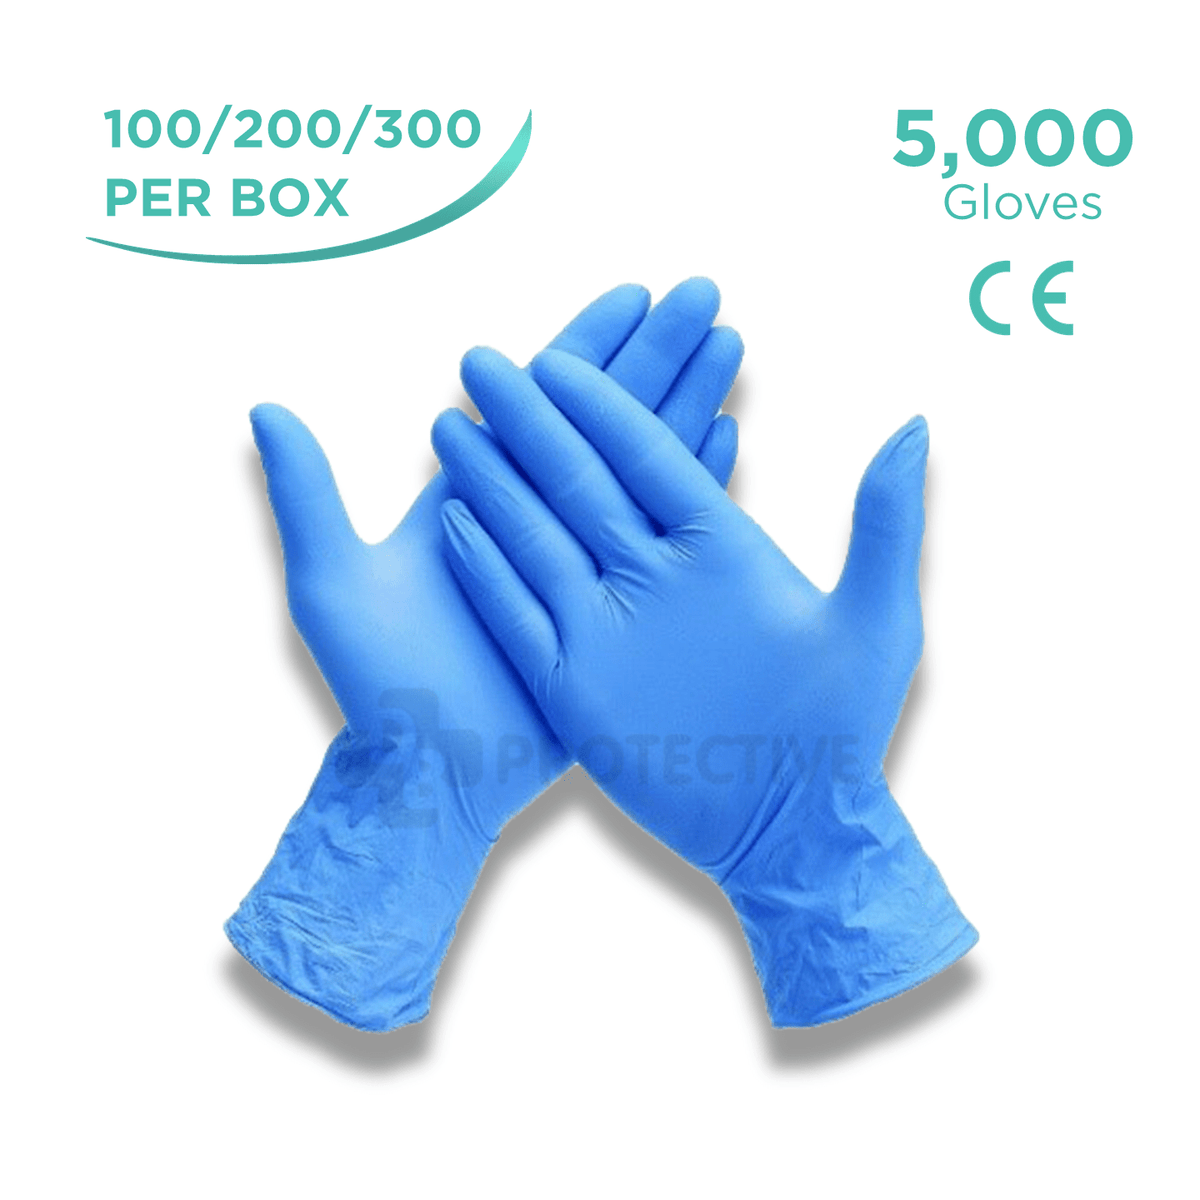 Chemo Nitrile Examination Gloves ASTM 6978 - Pack of 5,000 - USA Medical Supply - DB Protective